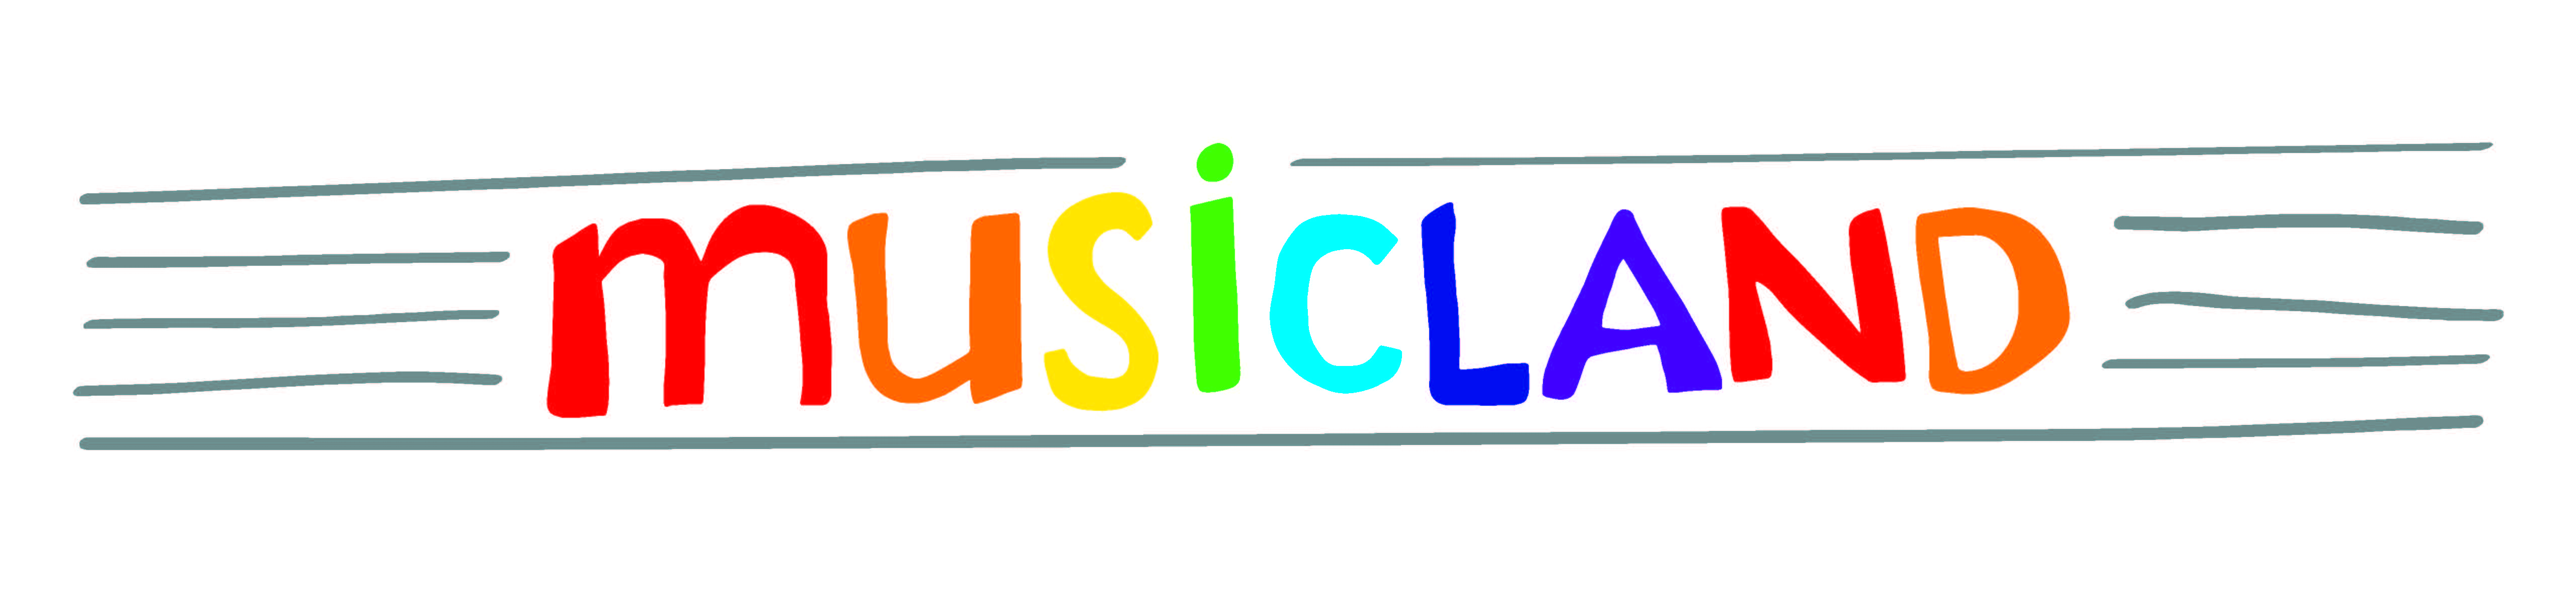 Musicland Oxford's logo